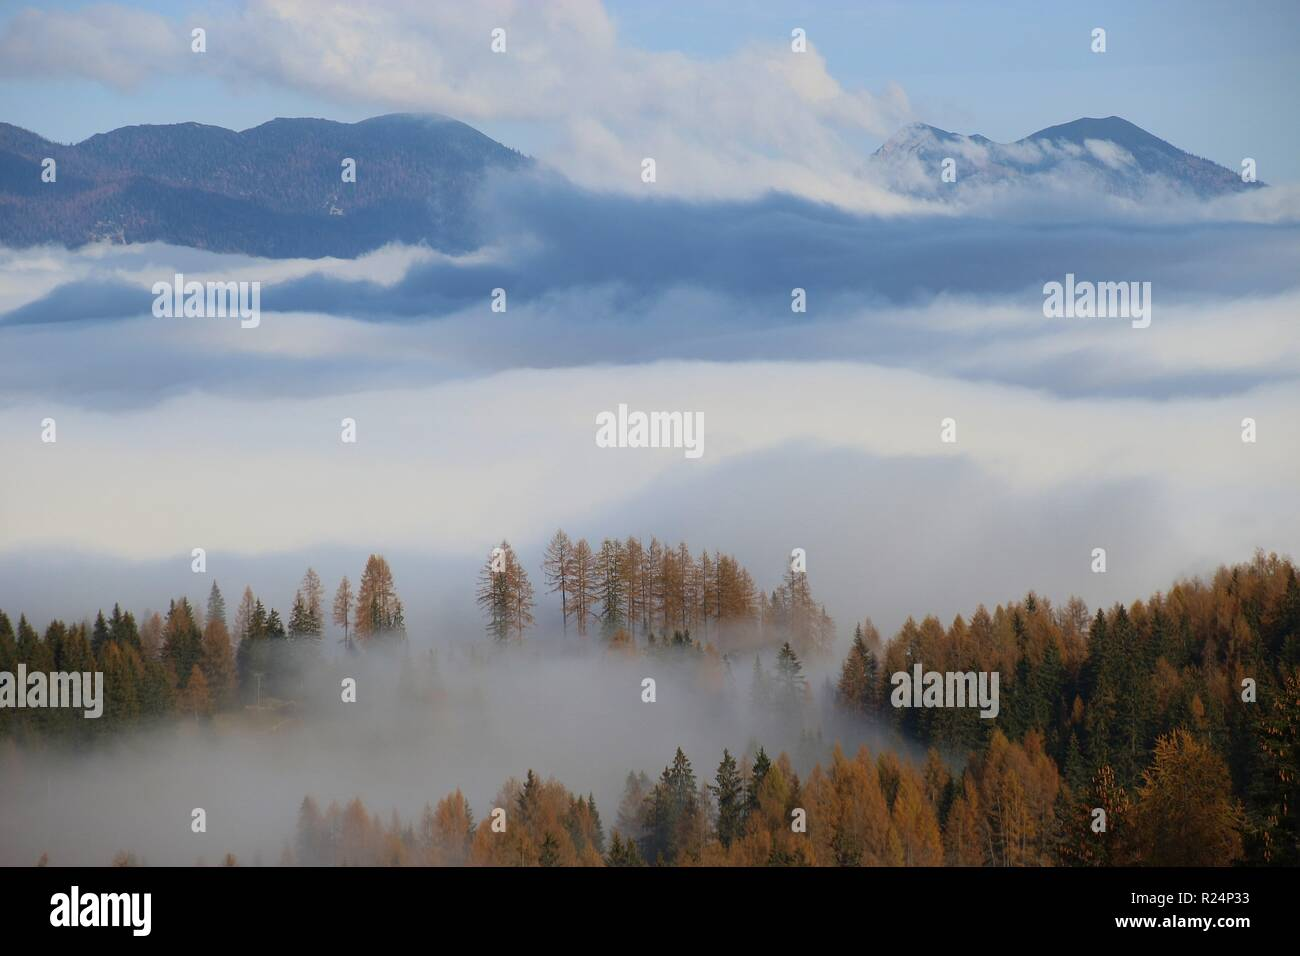 Dense fog above the valley, in autumn. Some firs are to be seen. Seen from above, in the Limestone alps national park, Upper Austria, Europe. - Stock Image